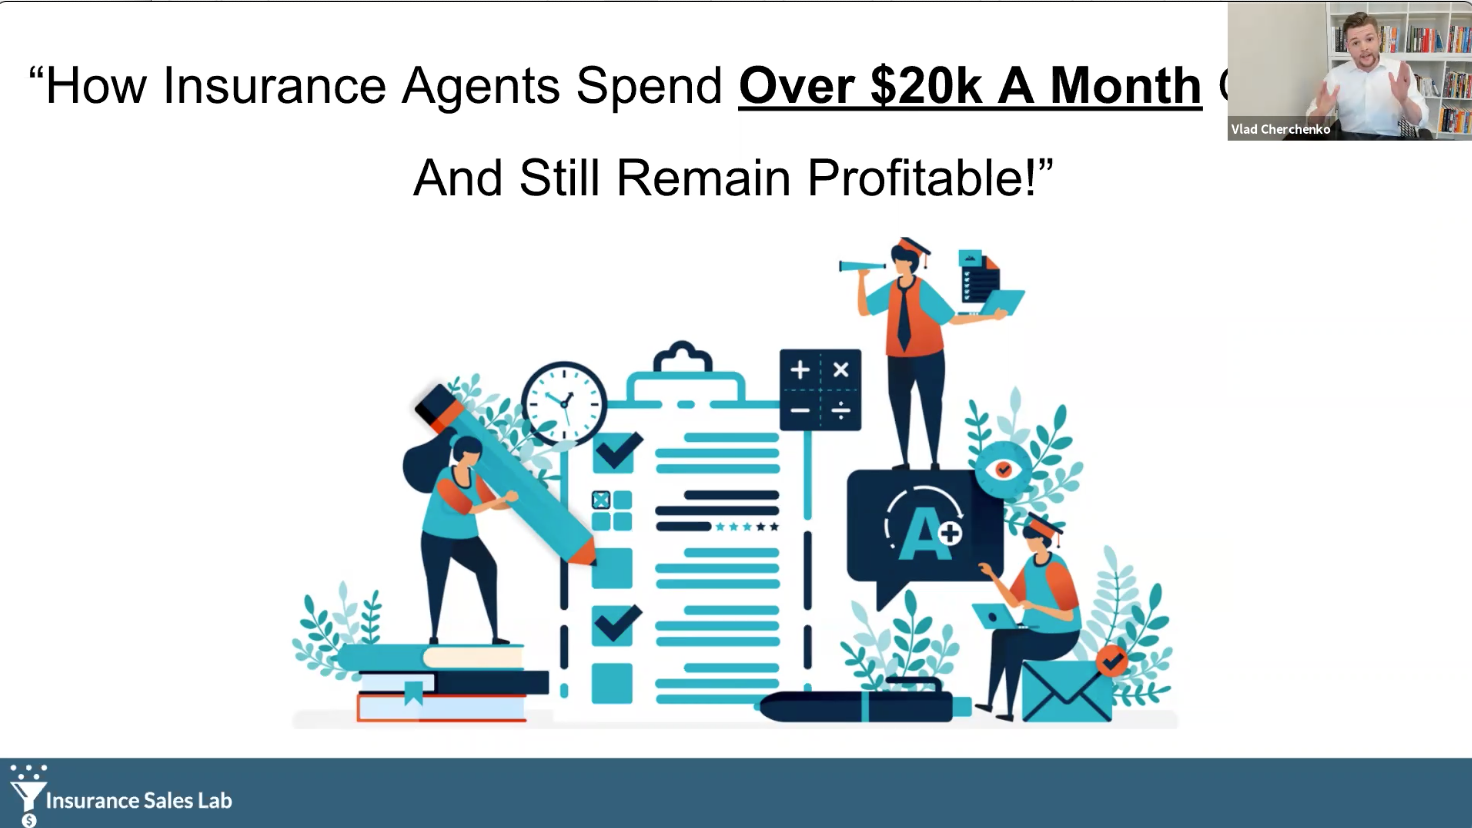 How Agents Spend Over $20k A Month On Leads, And Still Remain Profitable with Vlad Cherchenko